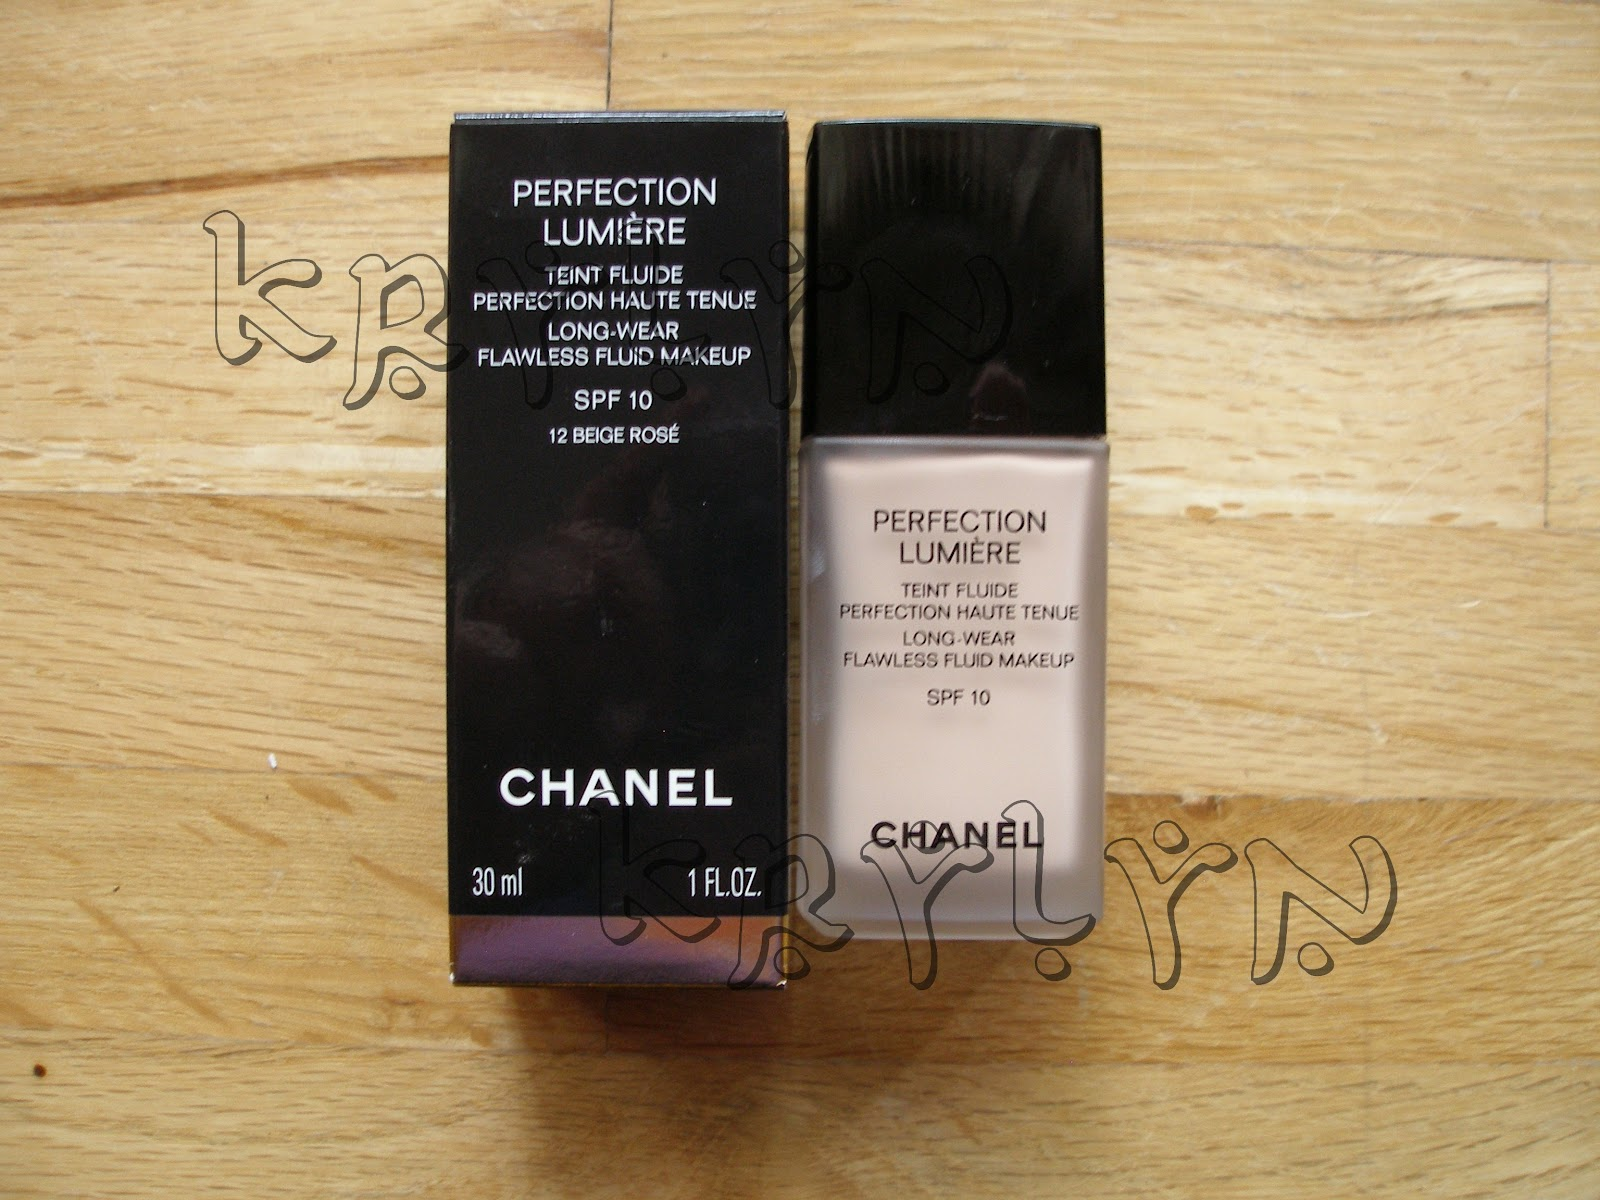 Krylyn Chanel Perfection Lumiere Spf 10 Review